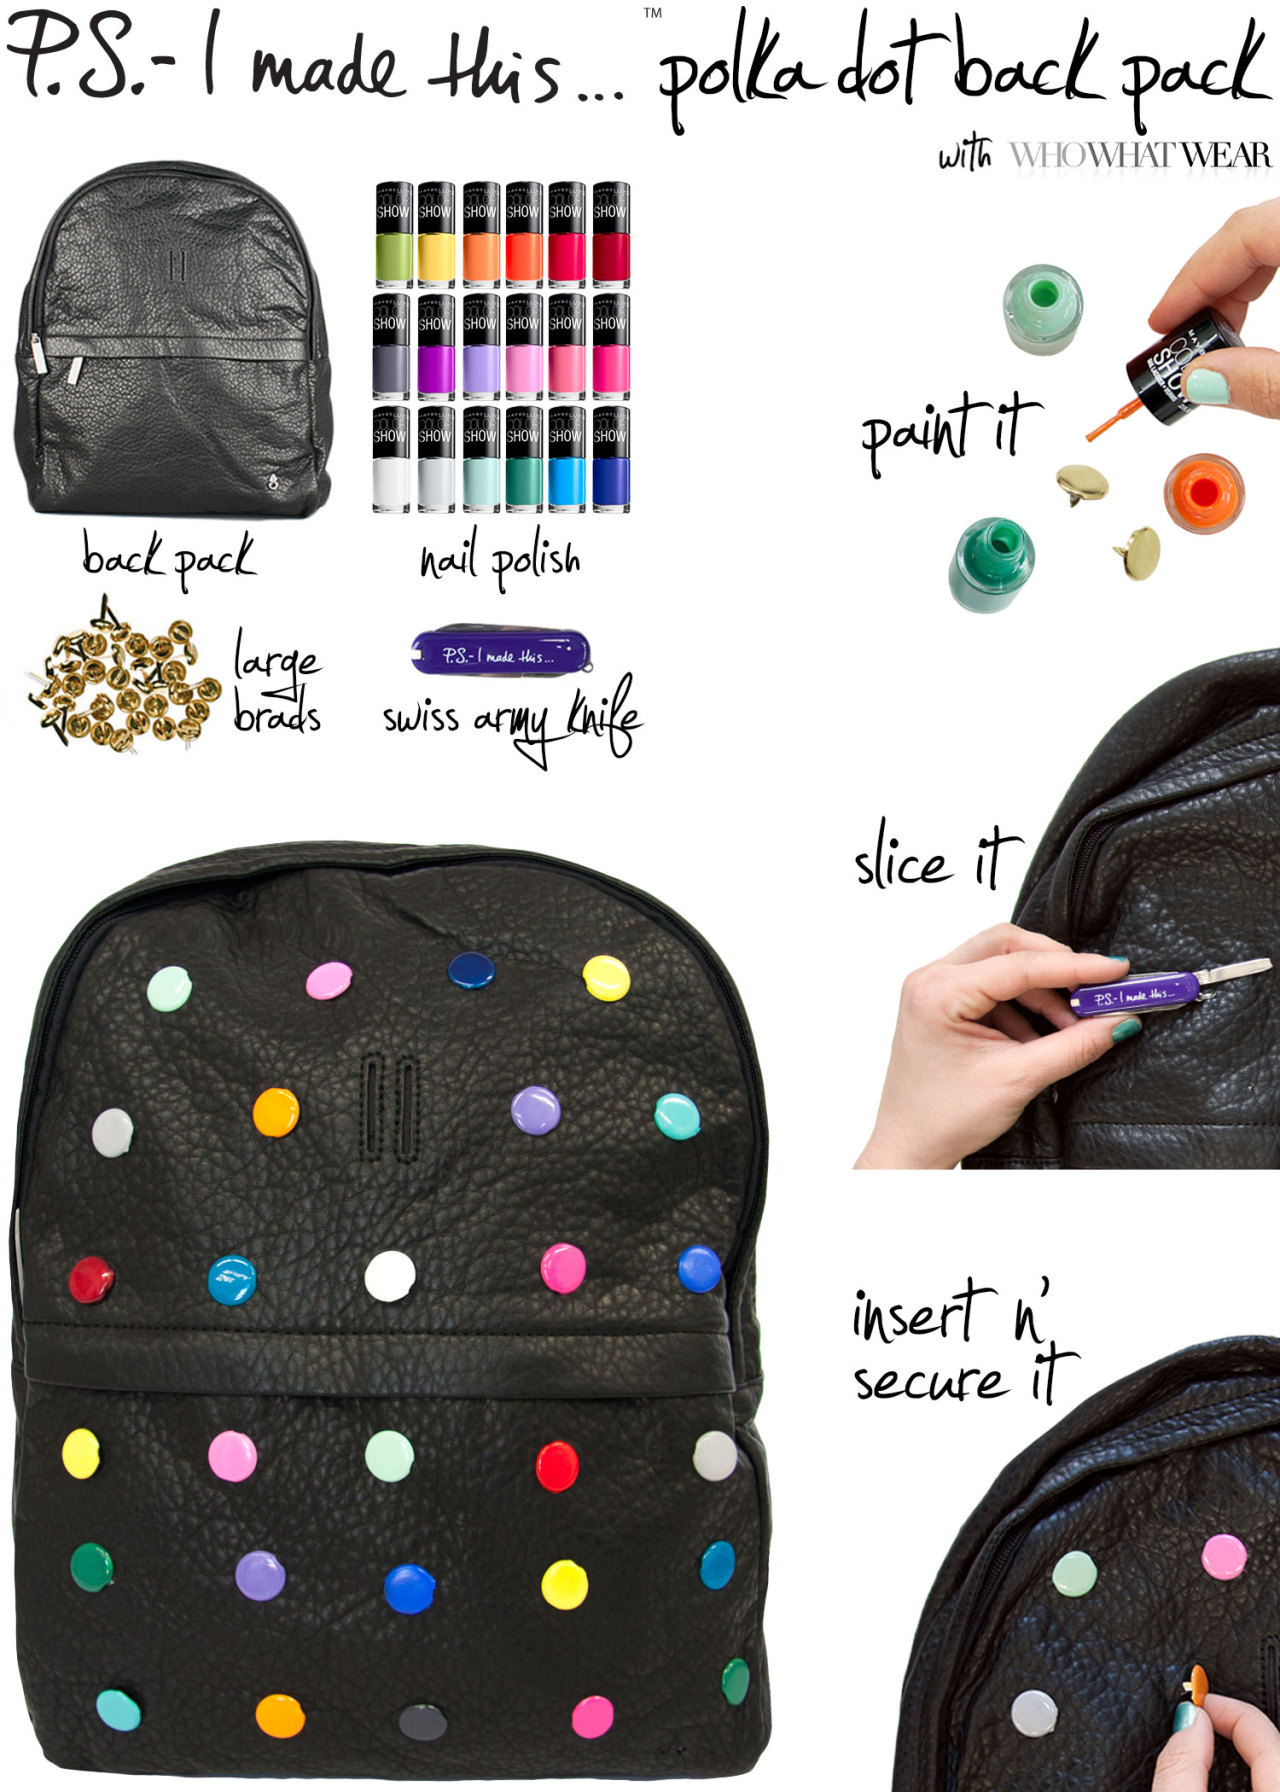 Graphic, colorful, and tasty as a gumball - if your eyes are peeled for trends in the art & fashion world, you're probably seeing spots. The Row x Damien Hirst collaborated on a series of limited edition backpacks that fuse sweet n' sassy colors with the edginess of black leather and gold. But their jaw-dropping retail price (55k!) begs the question…why pay the price of a work of art when you can create your own? This week's DIY, with WhoWhatWear, stands for Dot-It-Yourself!To create: Paint the surface of the brads with assorted nail polish colors and leave to dry. Slice small slits evenly across the front of the back pack with a swiss army knife. Insert the brads and bend to attach. P.S.- add a dab of glue to the backs of the brads to ensure they are fastened securely.Get excited for another round of whistle-while-you-work jams! CLICK HERE for our P.S.-I Made This…Playlist: Volume 2, once again collaborating with our talented friends, The Jane Doze.P.S.- quote courtesy from swell designer